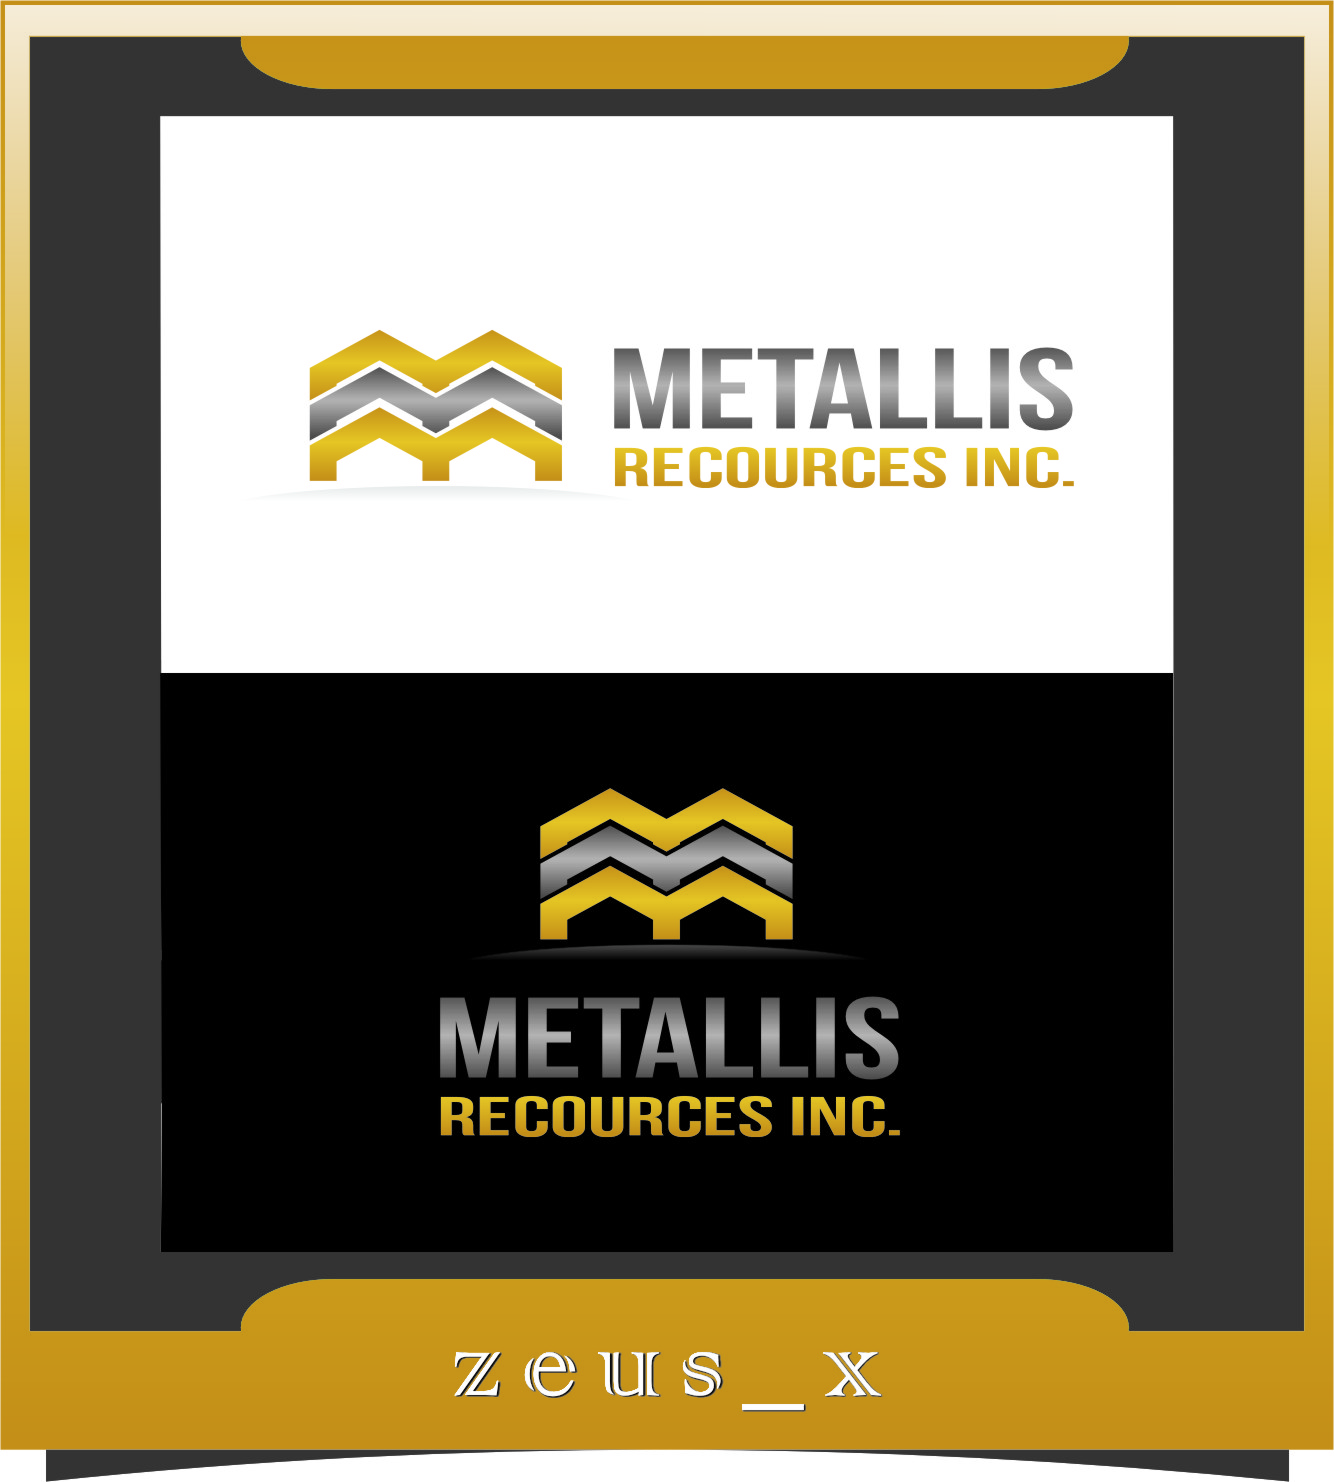 Logo Design by RasYa Muhammad Athaya - Entry No. 101 in the Logo Design Contest Metallis Resources Inc Logo Design.